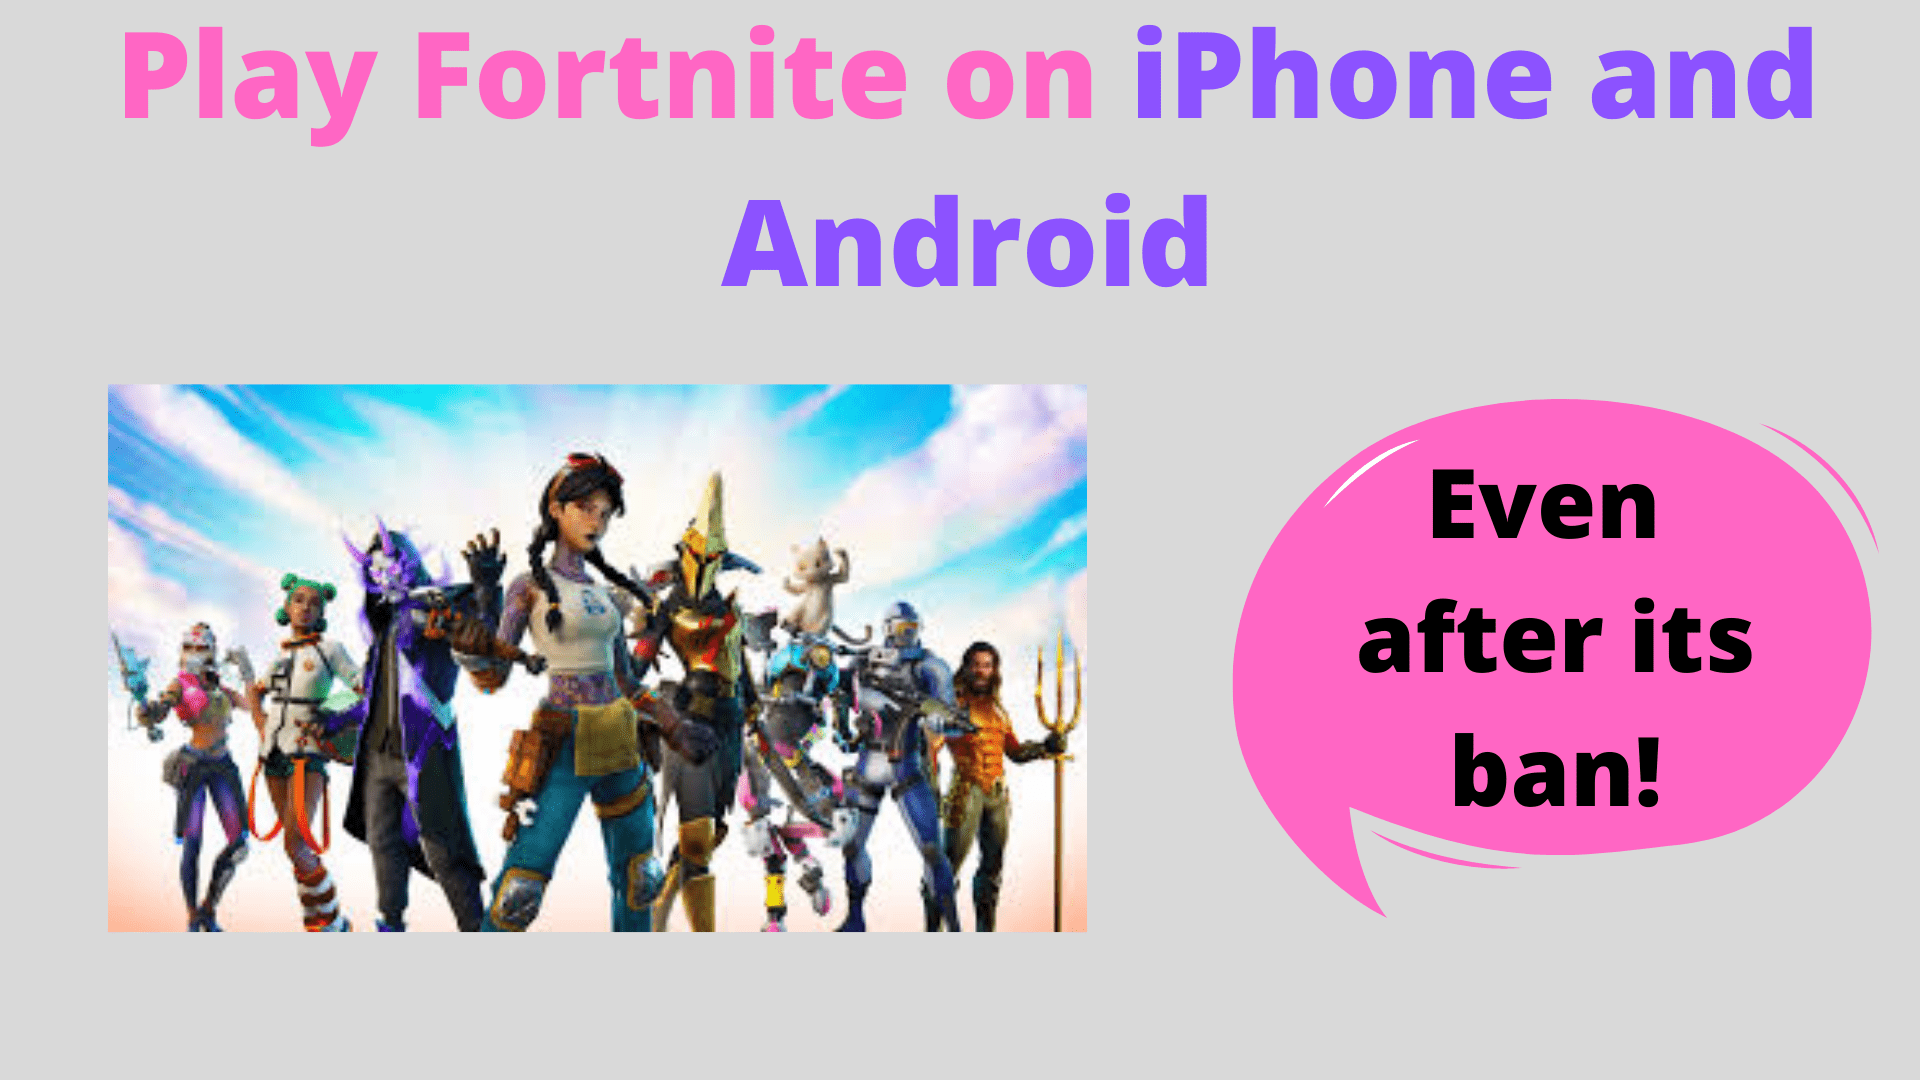 Play Fortnite on iPhone and Android,